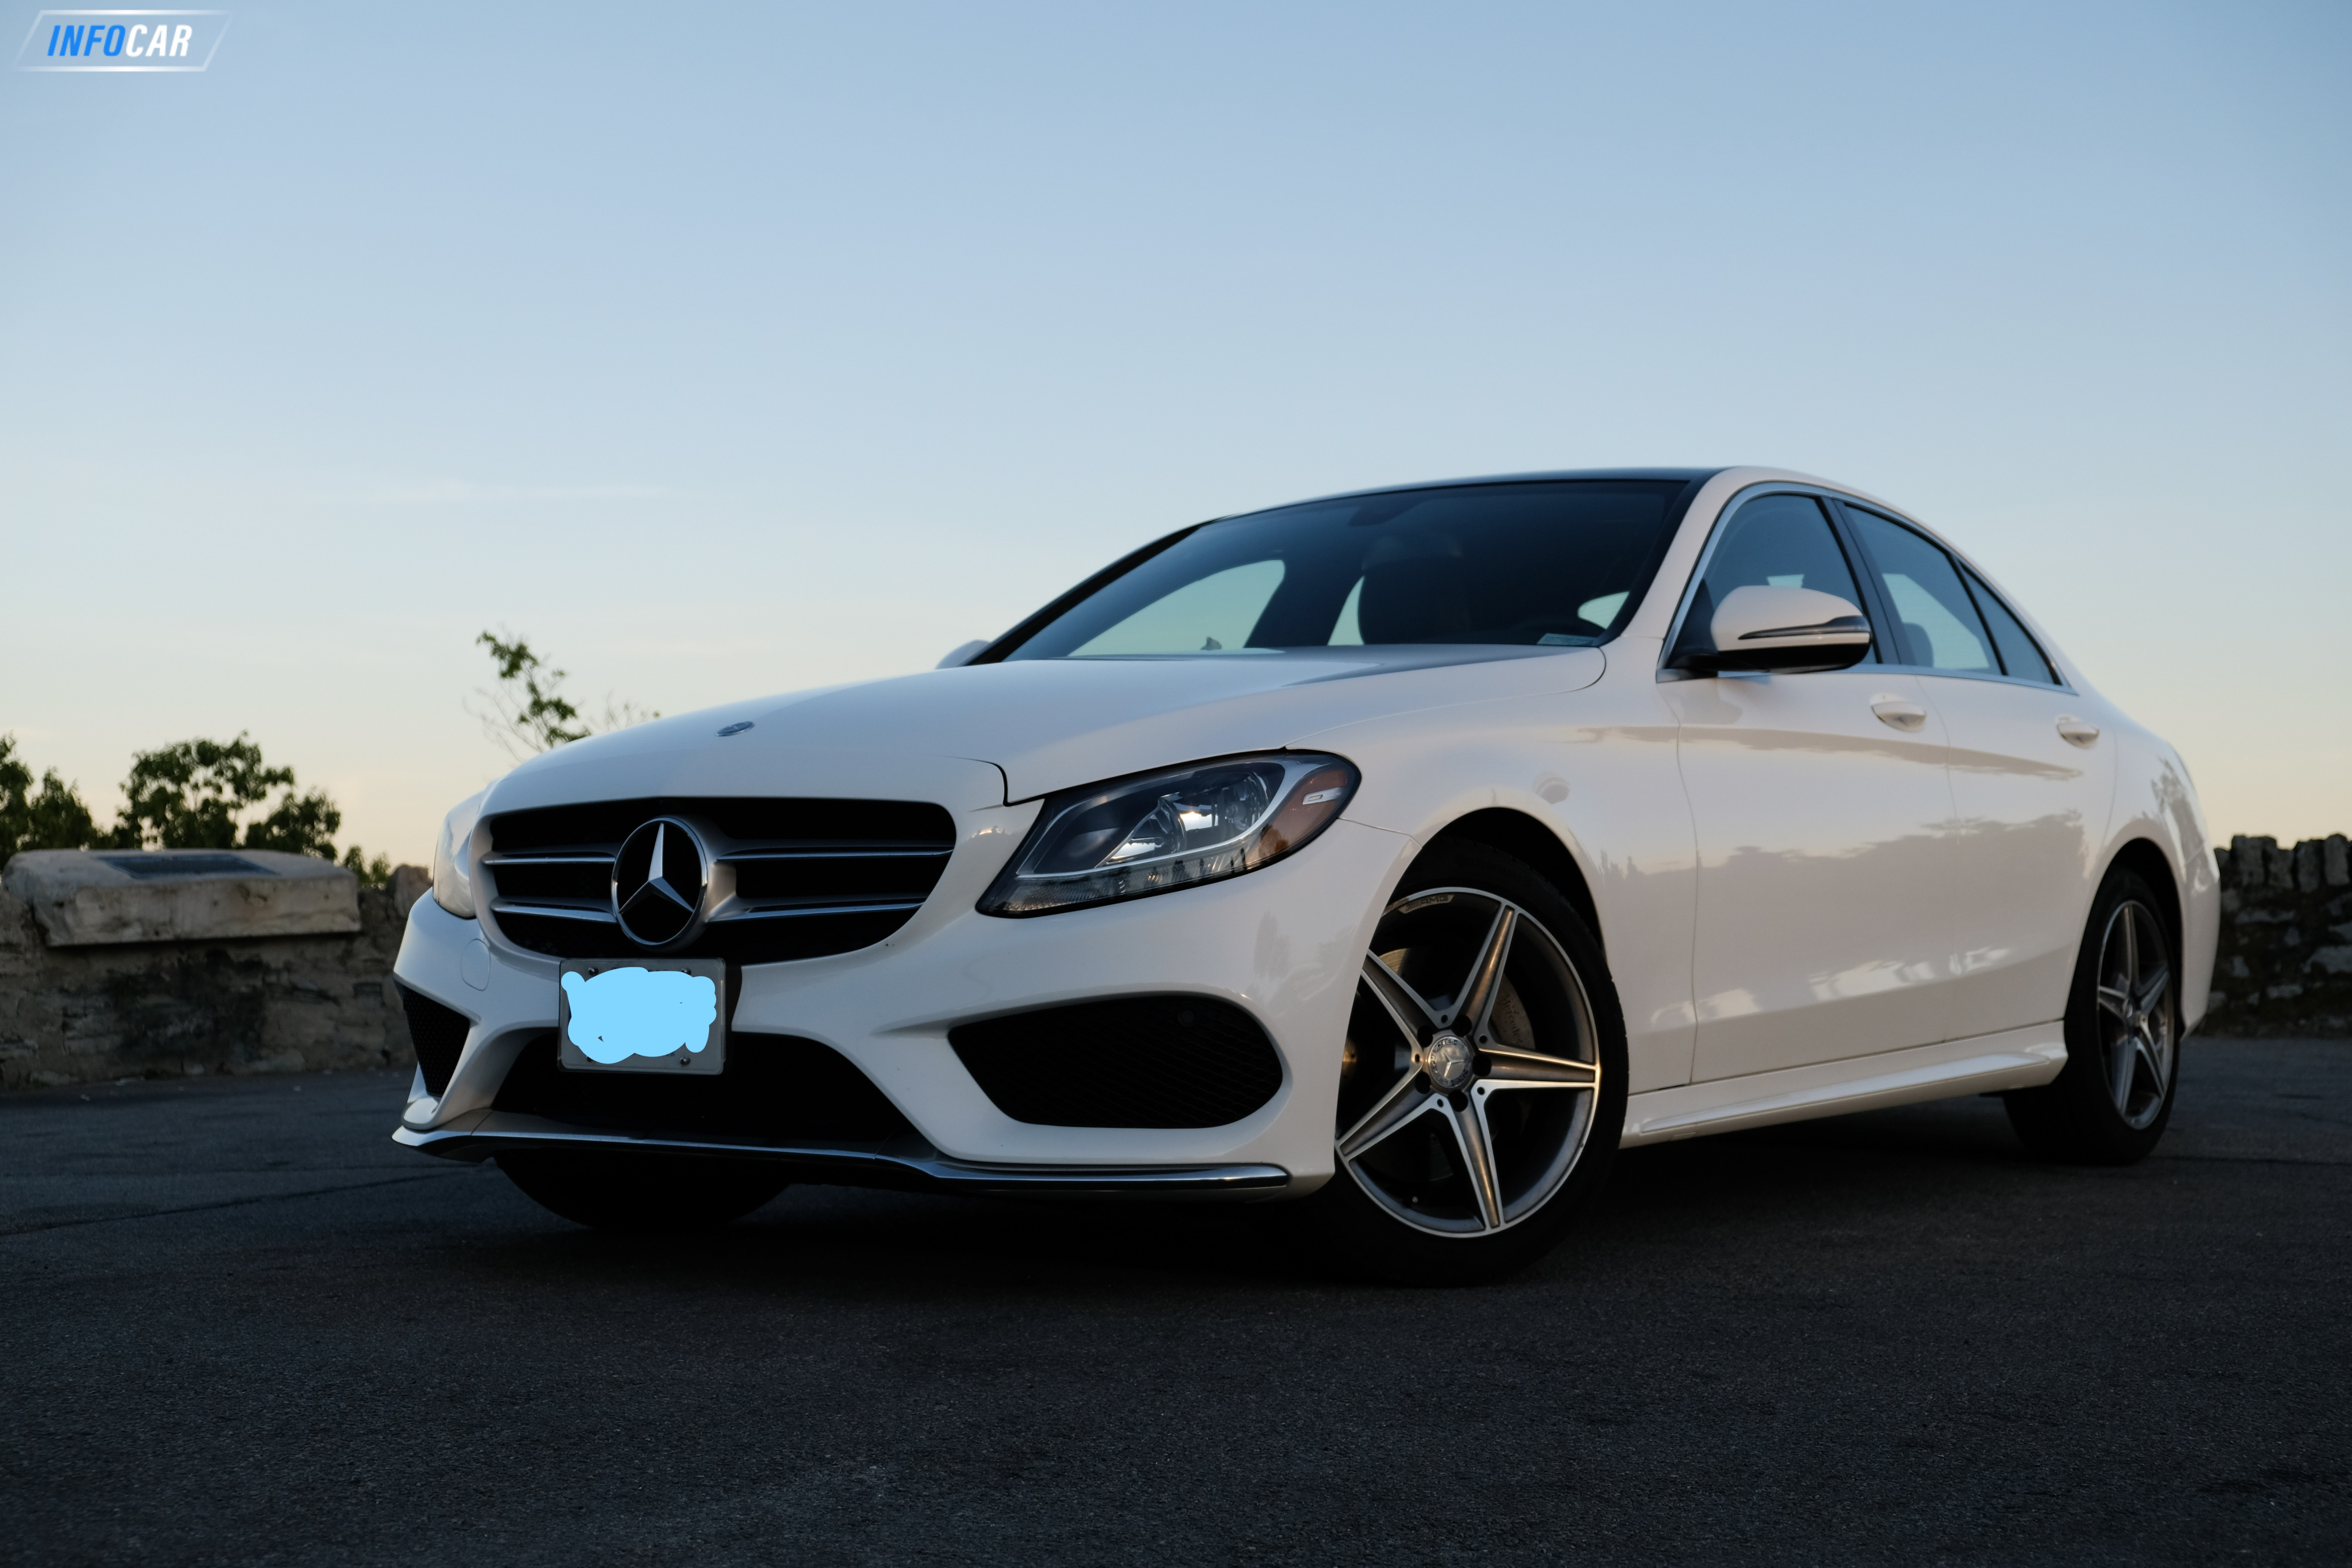 2016 Mercedes-Benz C-Class 300 - INFOCAR - Toronto's Most Comprehensive New and Used Auto Trading Platform